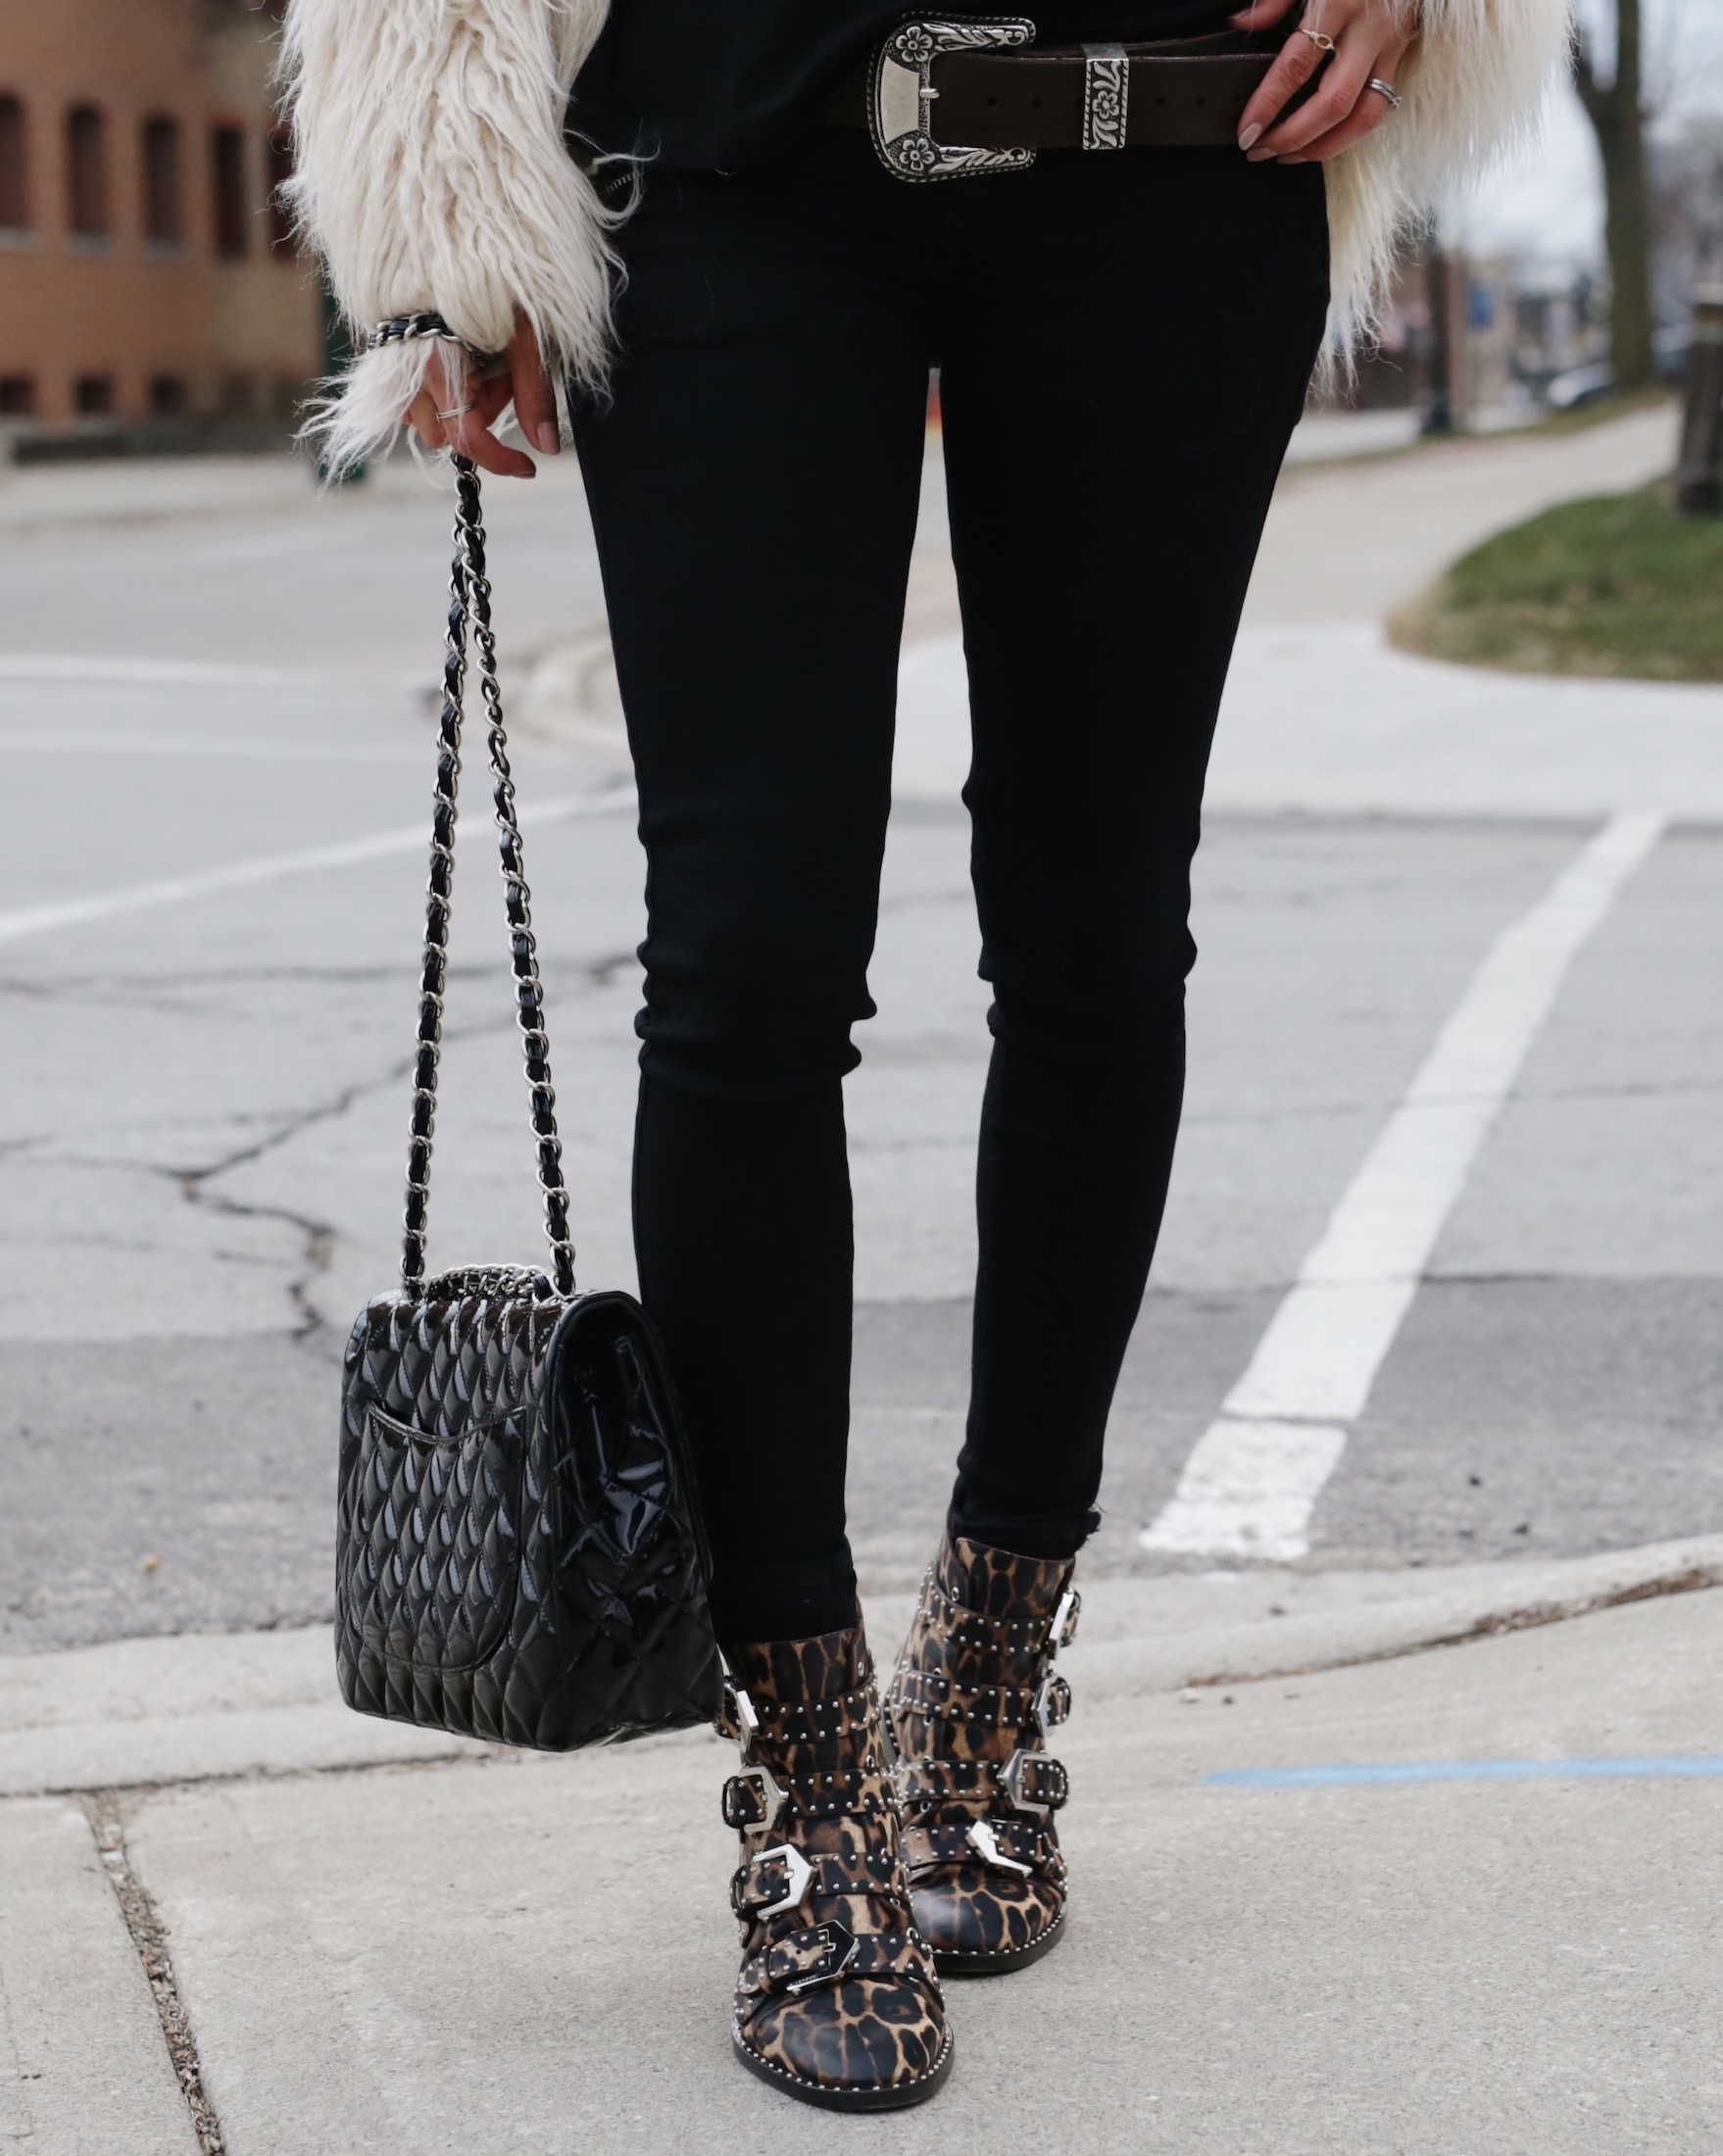 givenchy studded leopard boots, faux fur jacket and patent leather chanel bag - woahstyle.com_5618.JPG